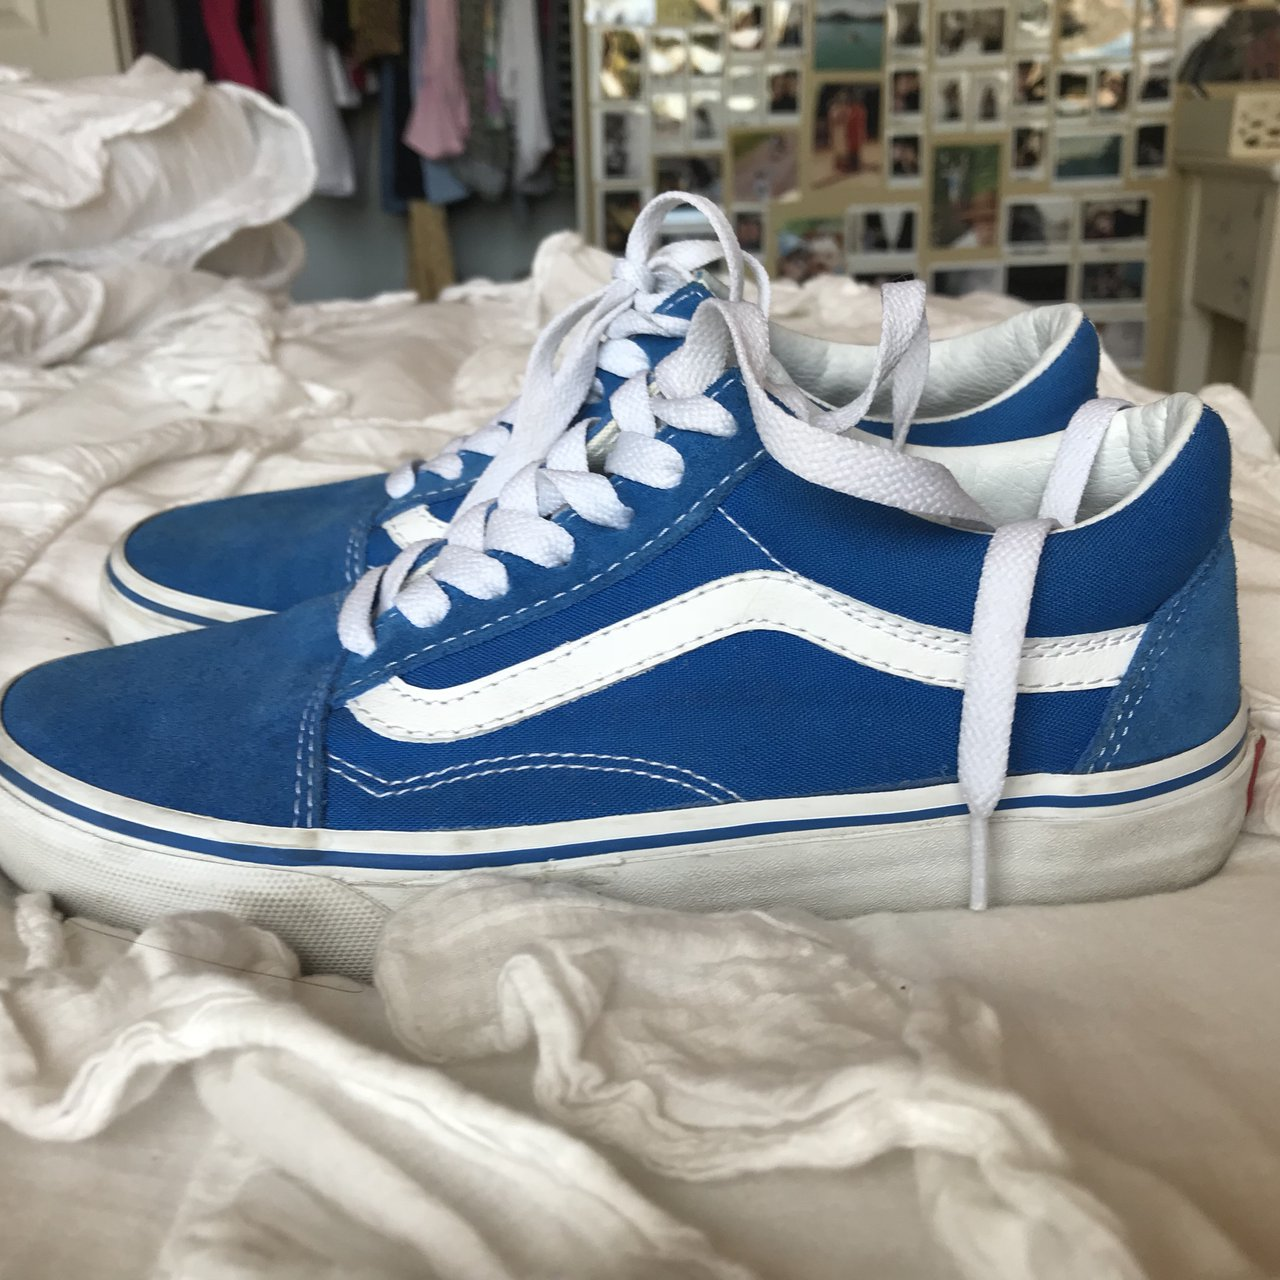 sale retailer 765b6 7d752 royal blue old skool vans. these are so cute but I never 3 - Depop